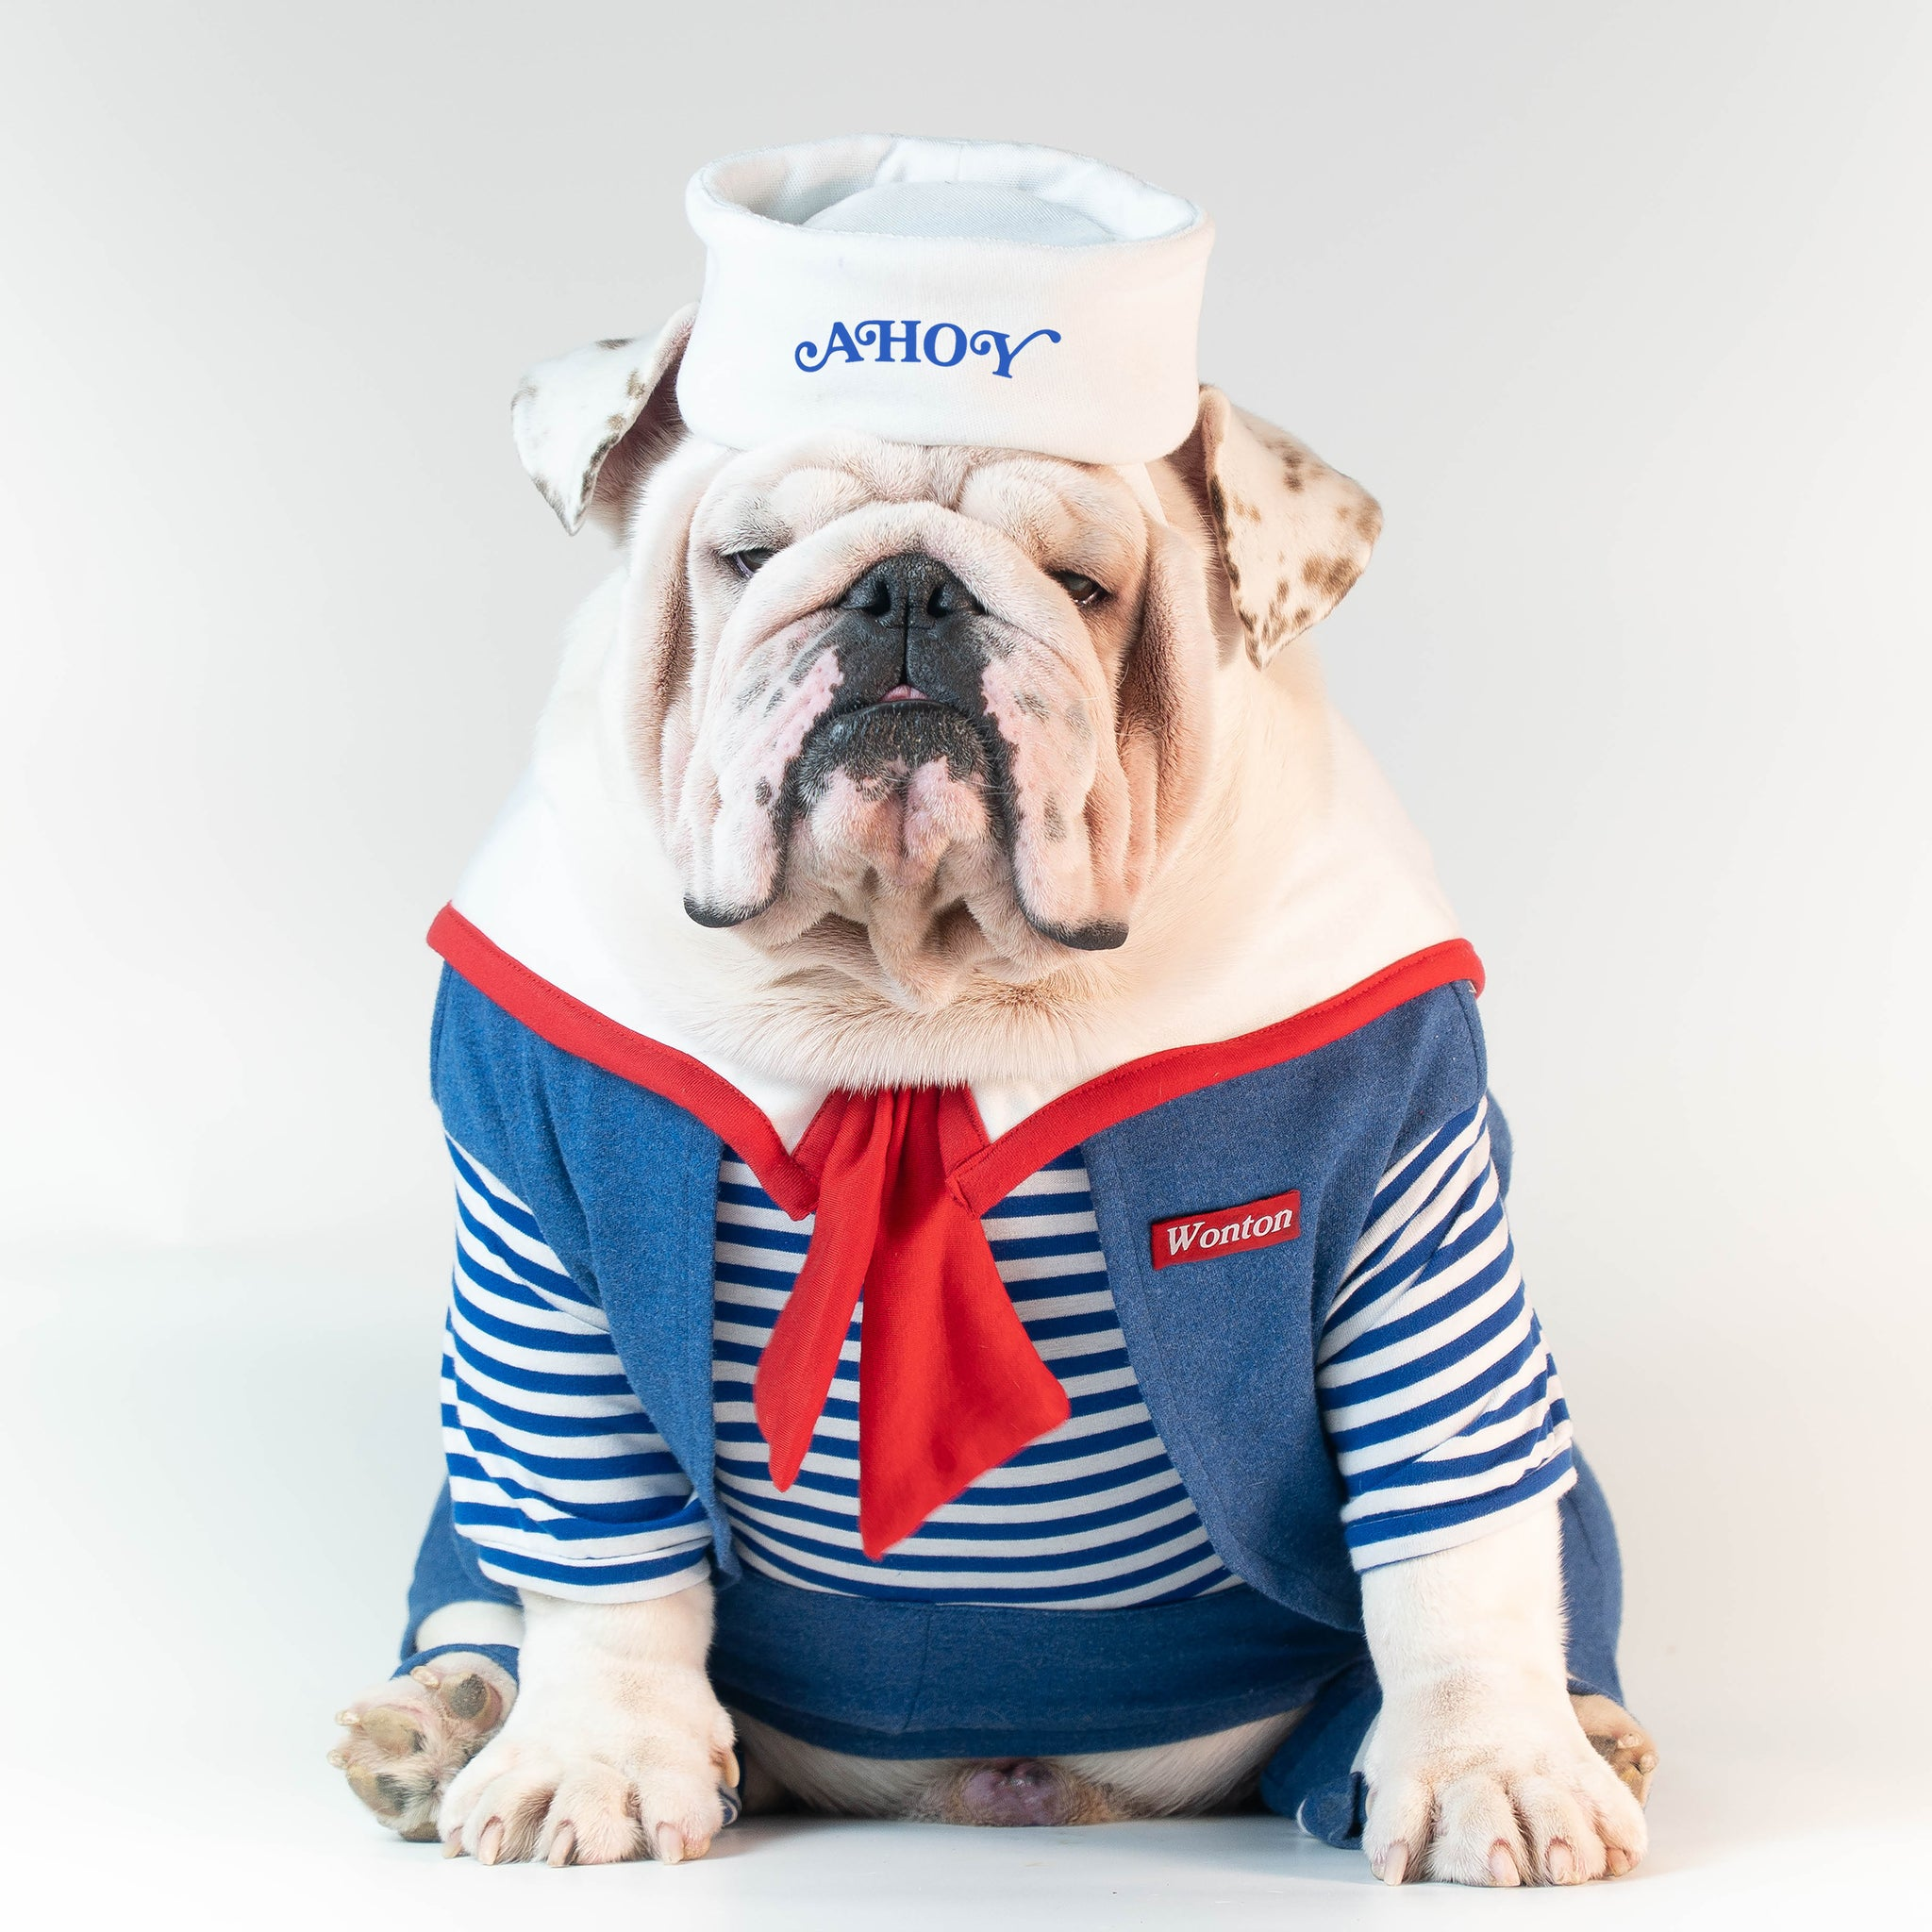 WONTON TRICK or TREAT, ROBIN SCOOPS AHOY Pajama - WontonCollection